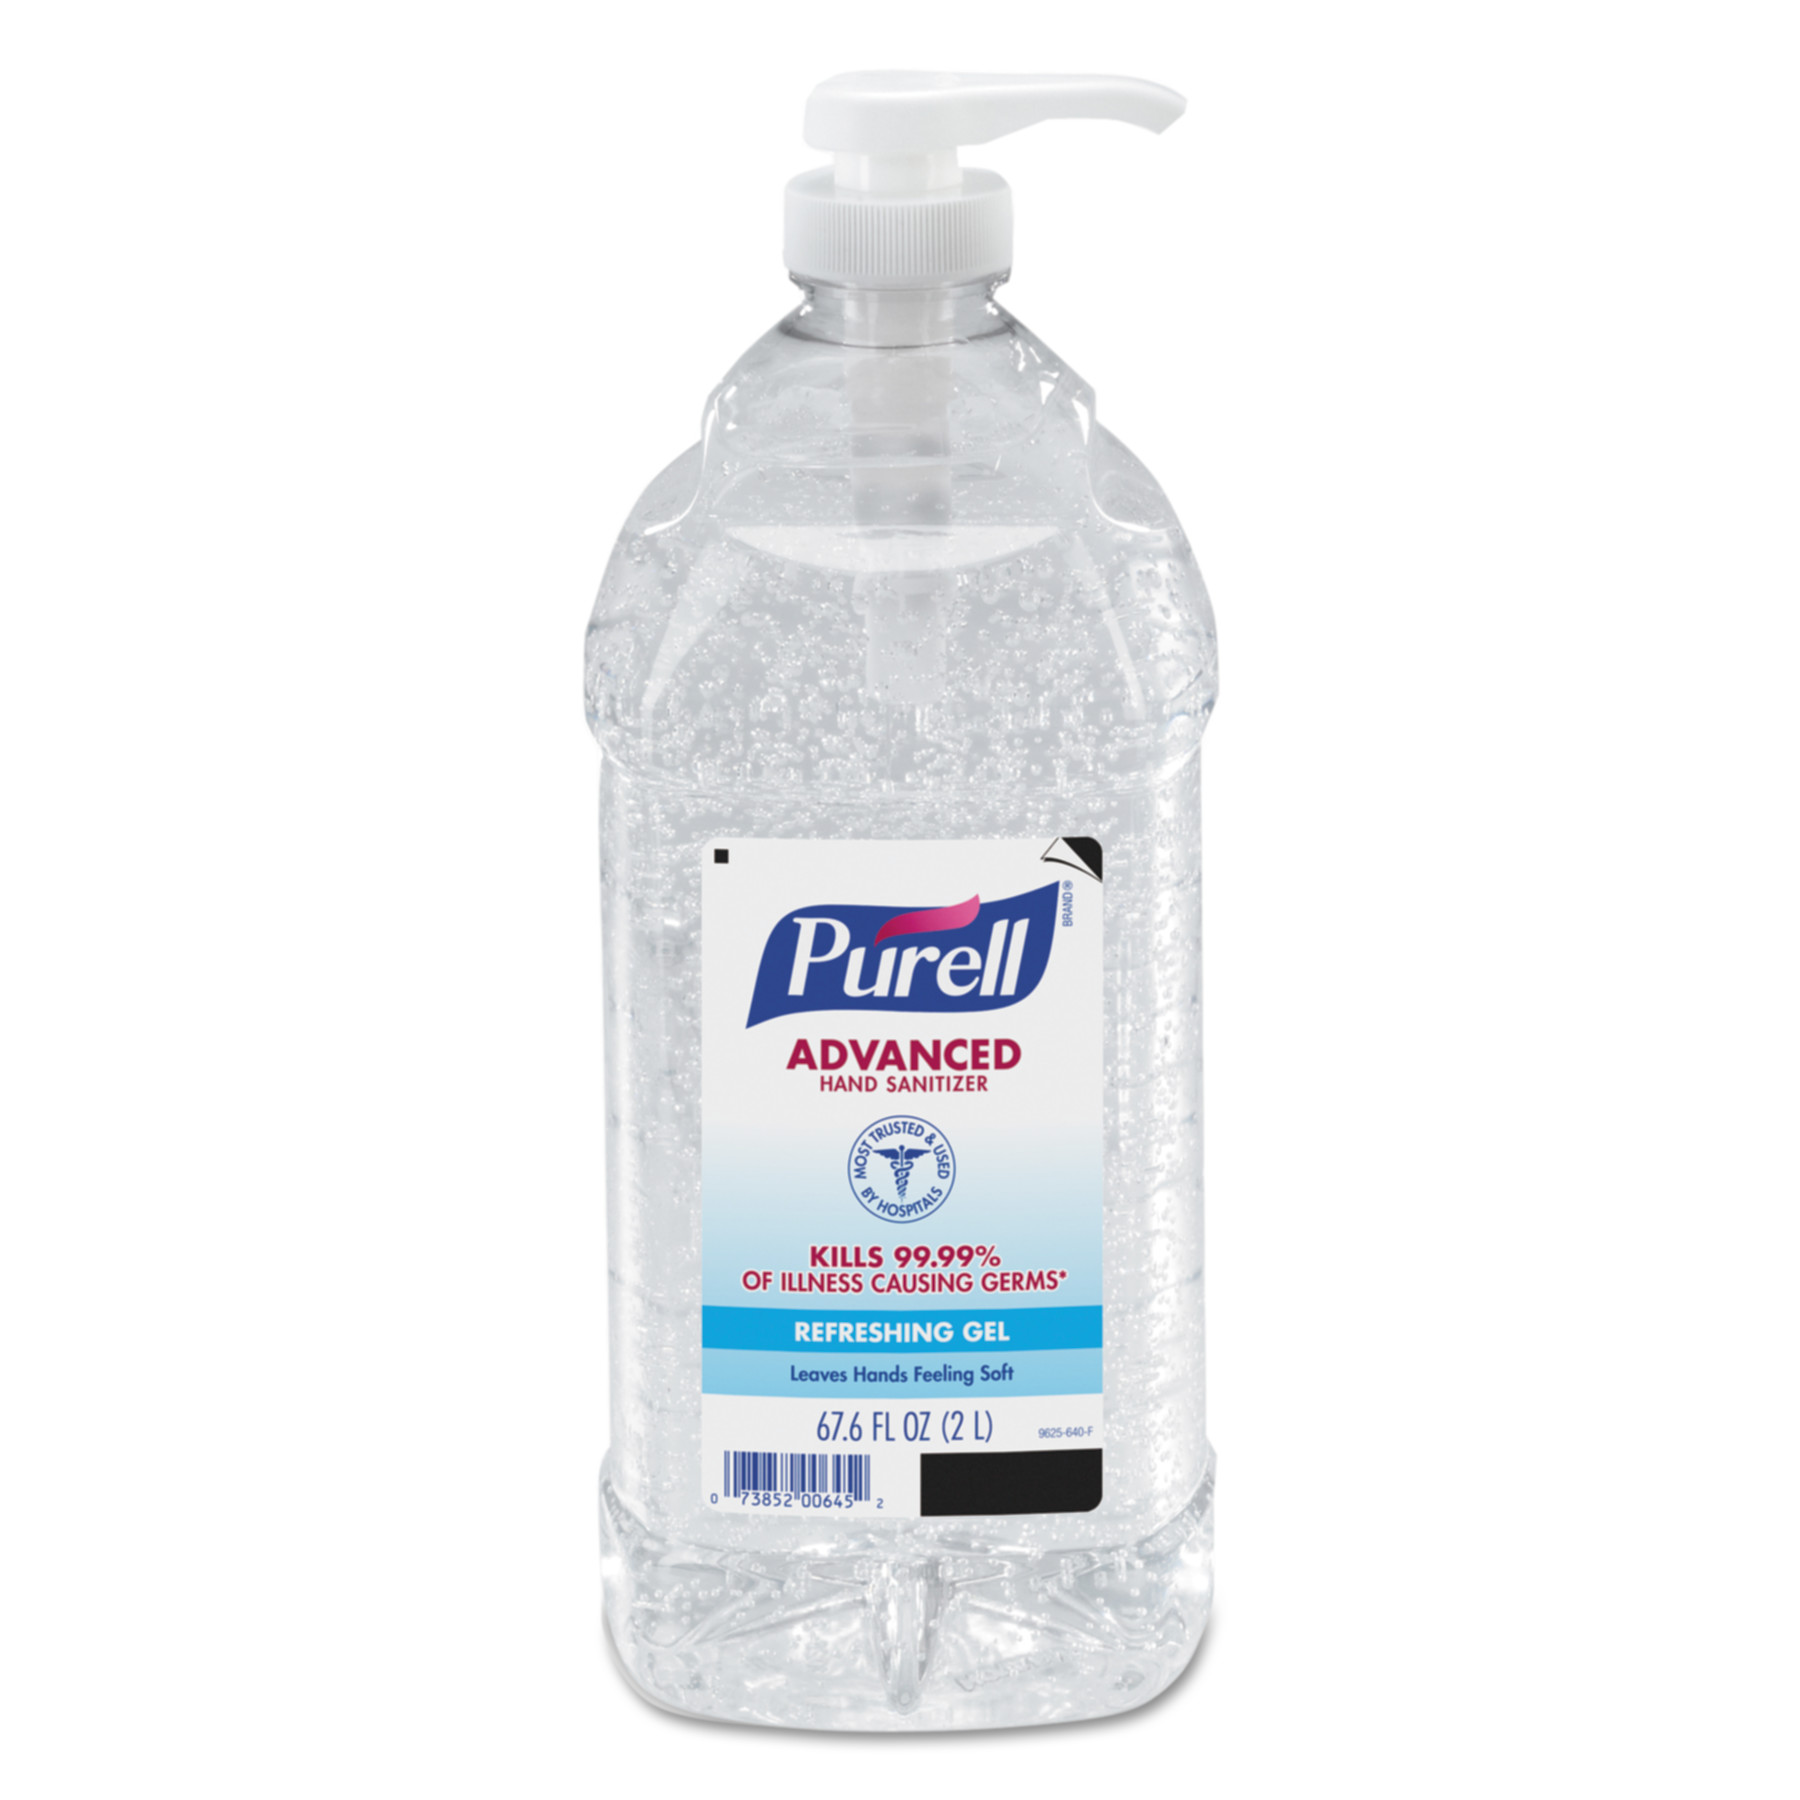 PURELL Advanced Instant Hand Sanitizer 9625-04, 2-liter Bottle